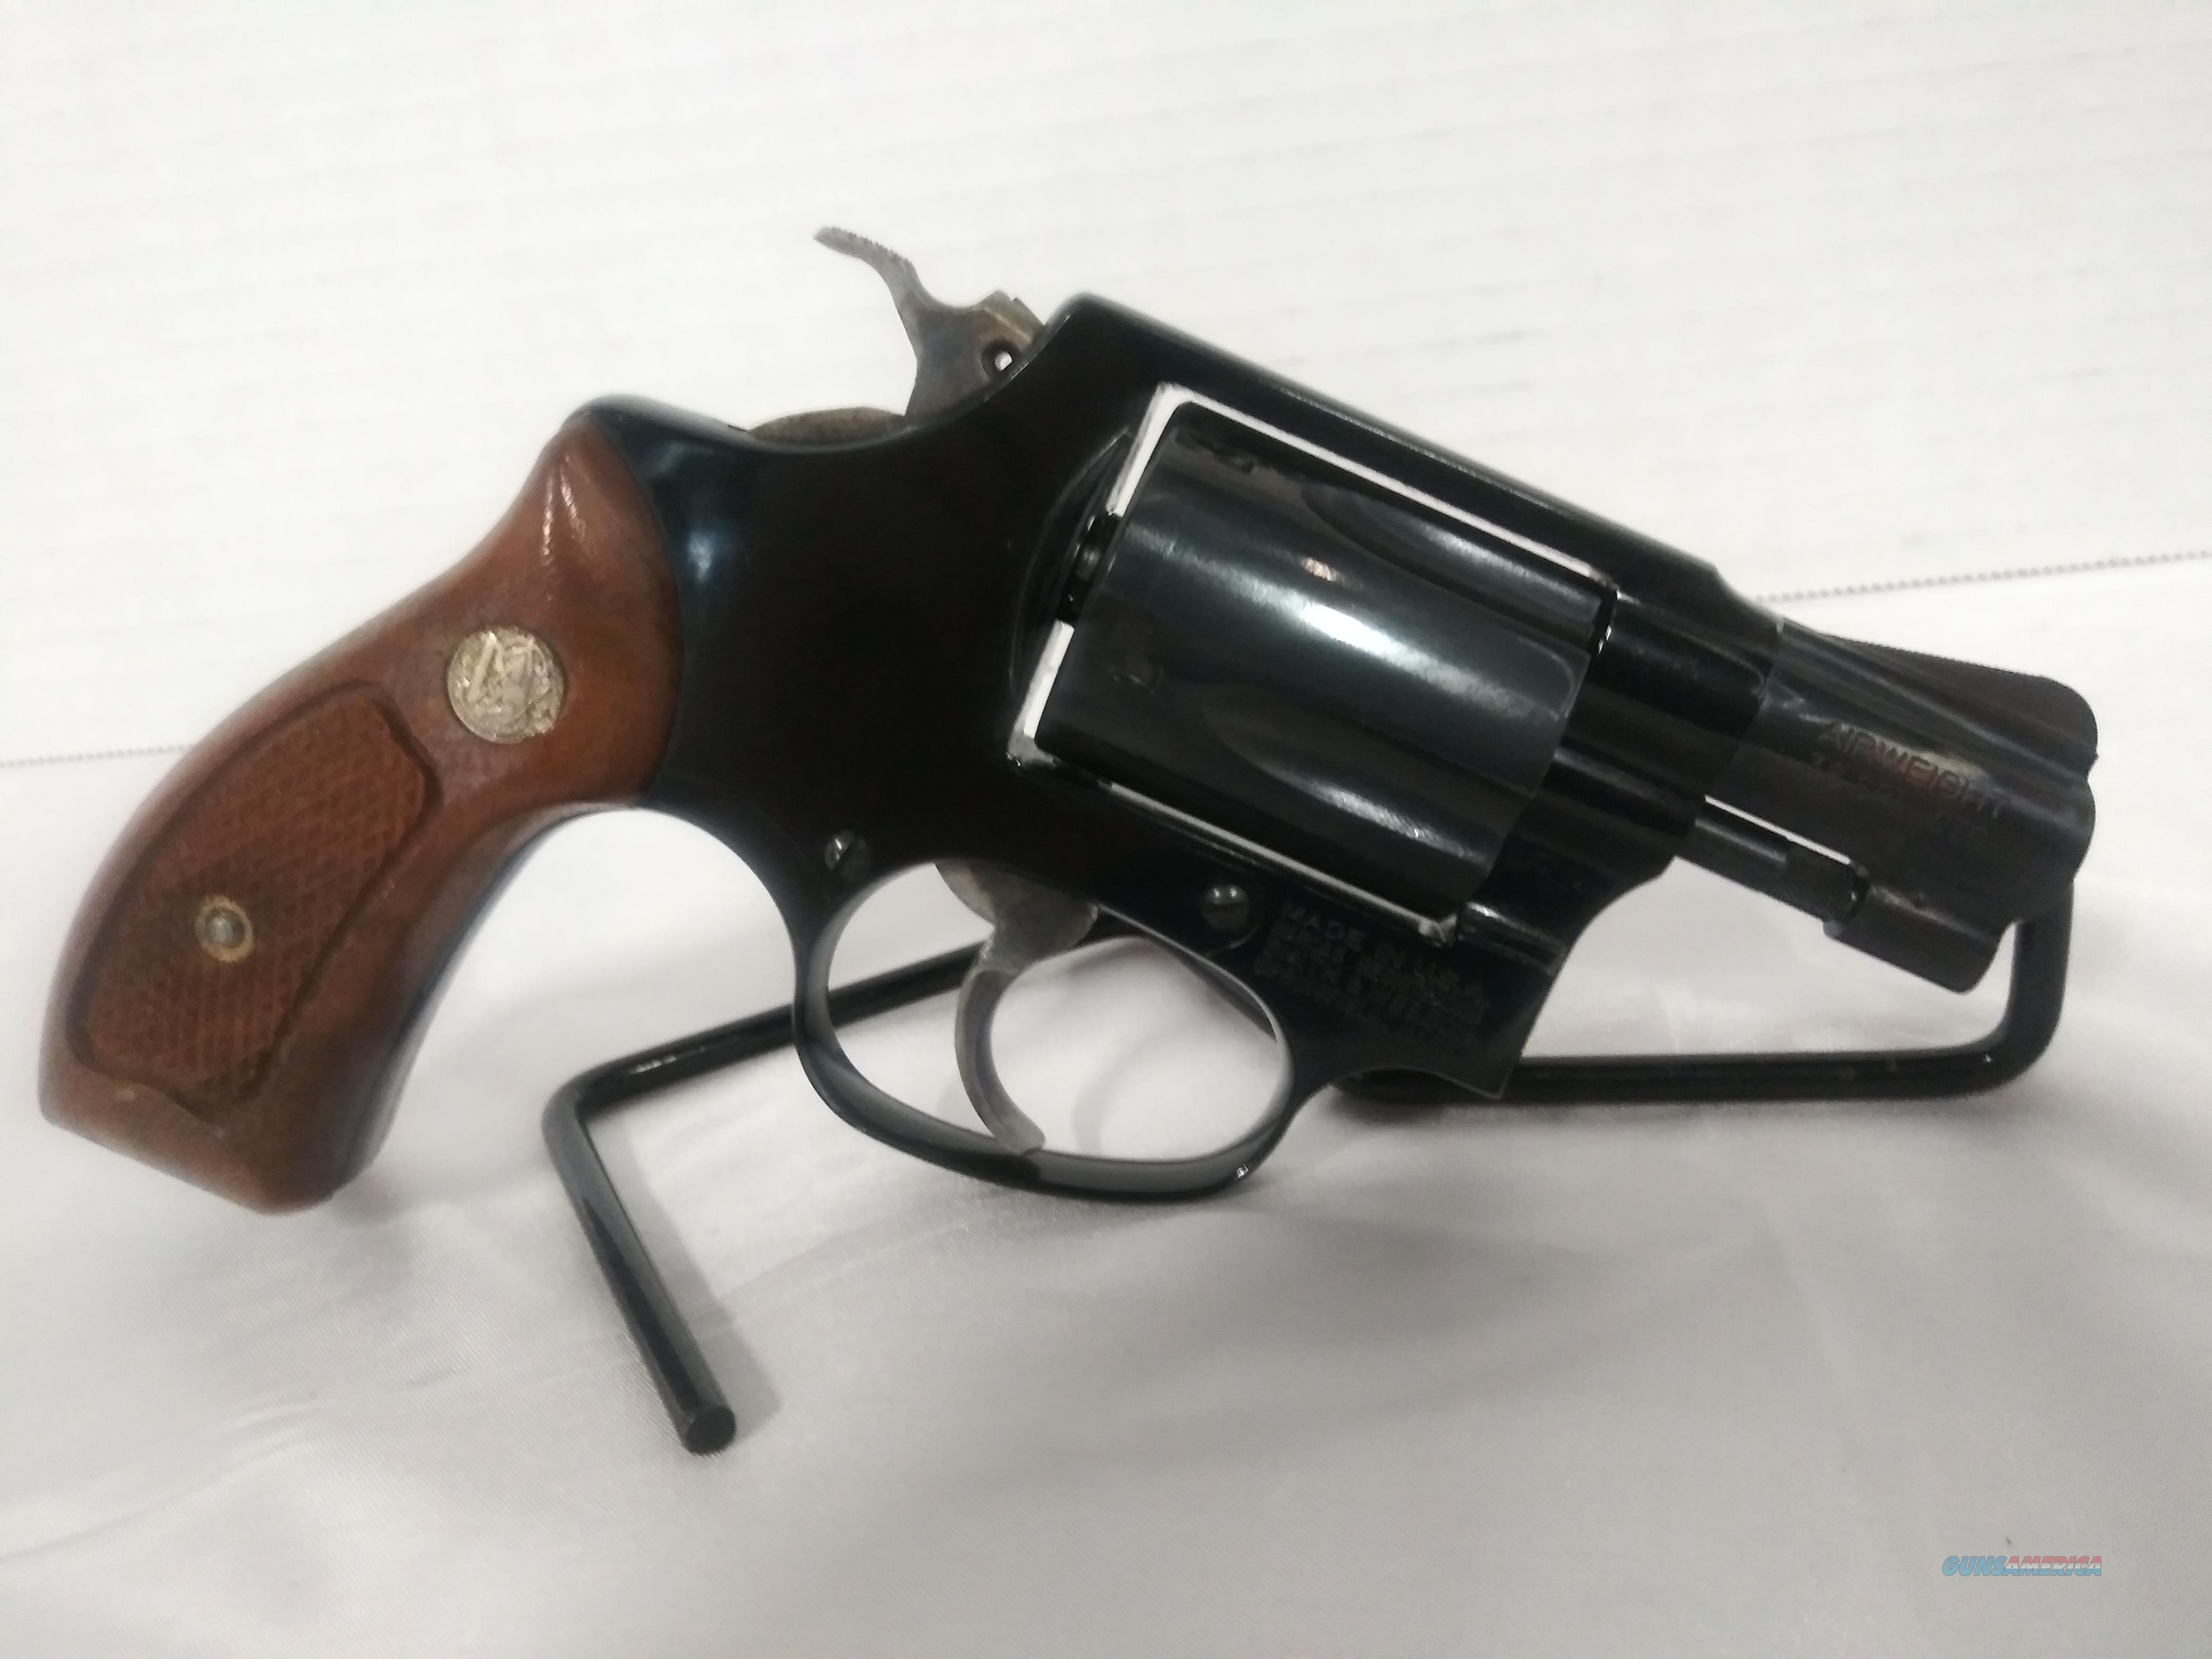 Smith & Wesson Model 38 With Box Used No CC Fees Layaway  Guns > Pistols > Smith & Wesson Revolvers > Small Frame ( J )